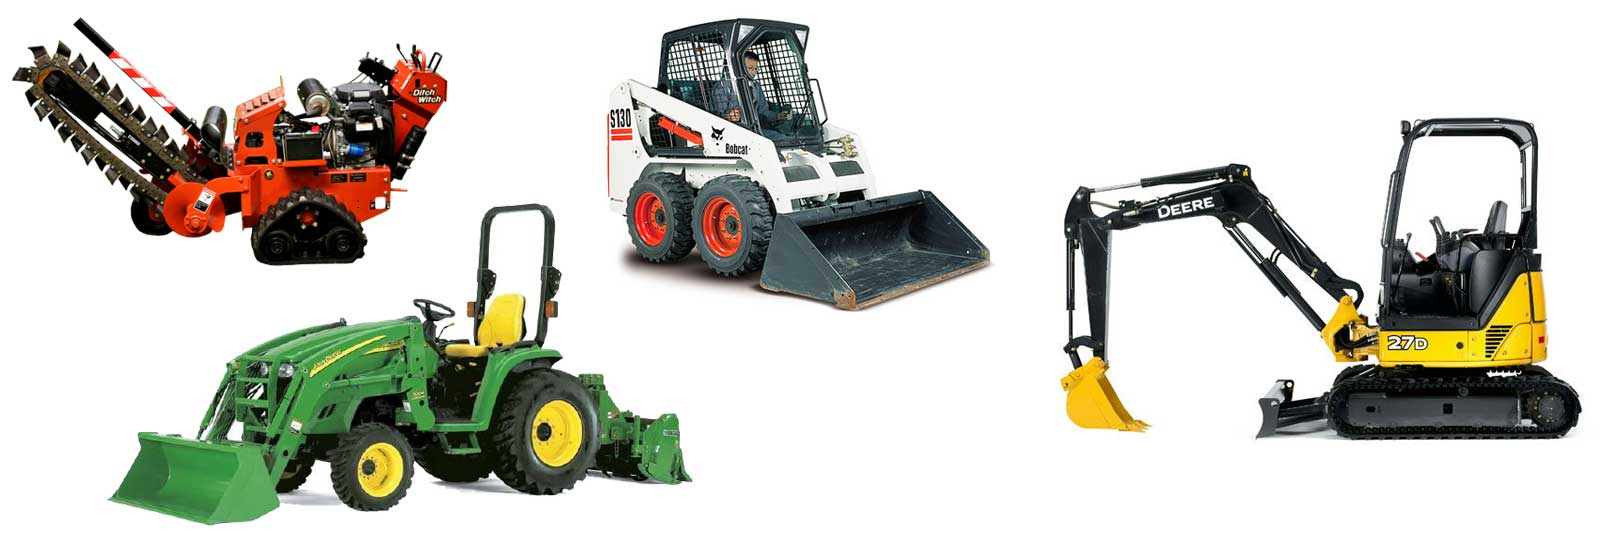 Equipment Rentals in Northeast Mississippi and Western Alabama